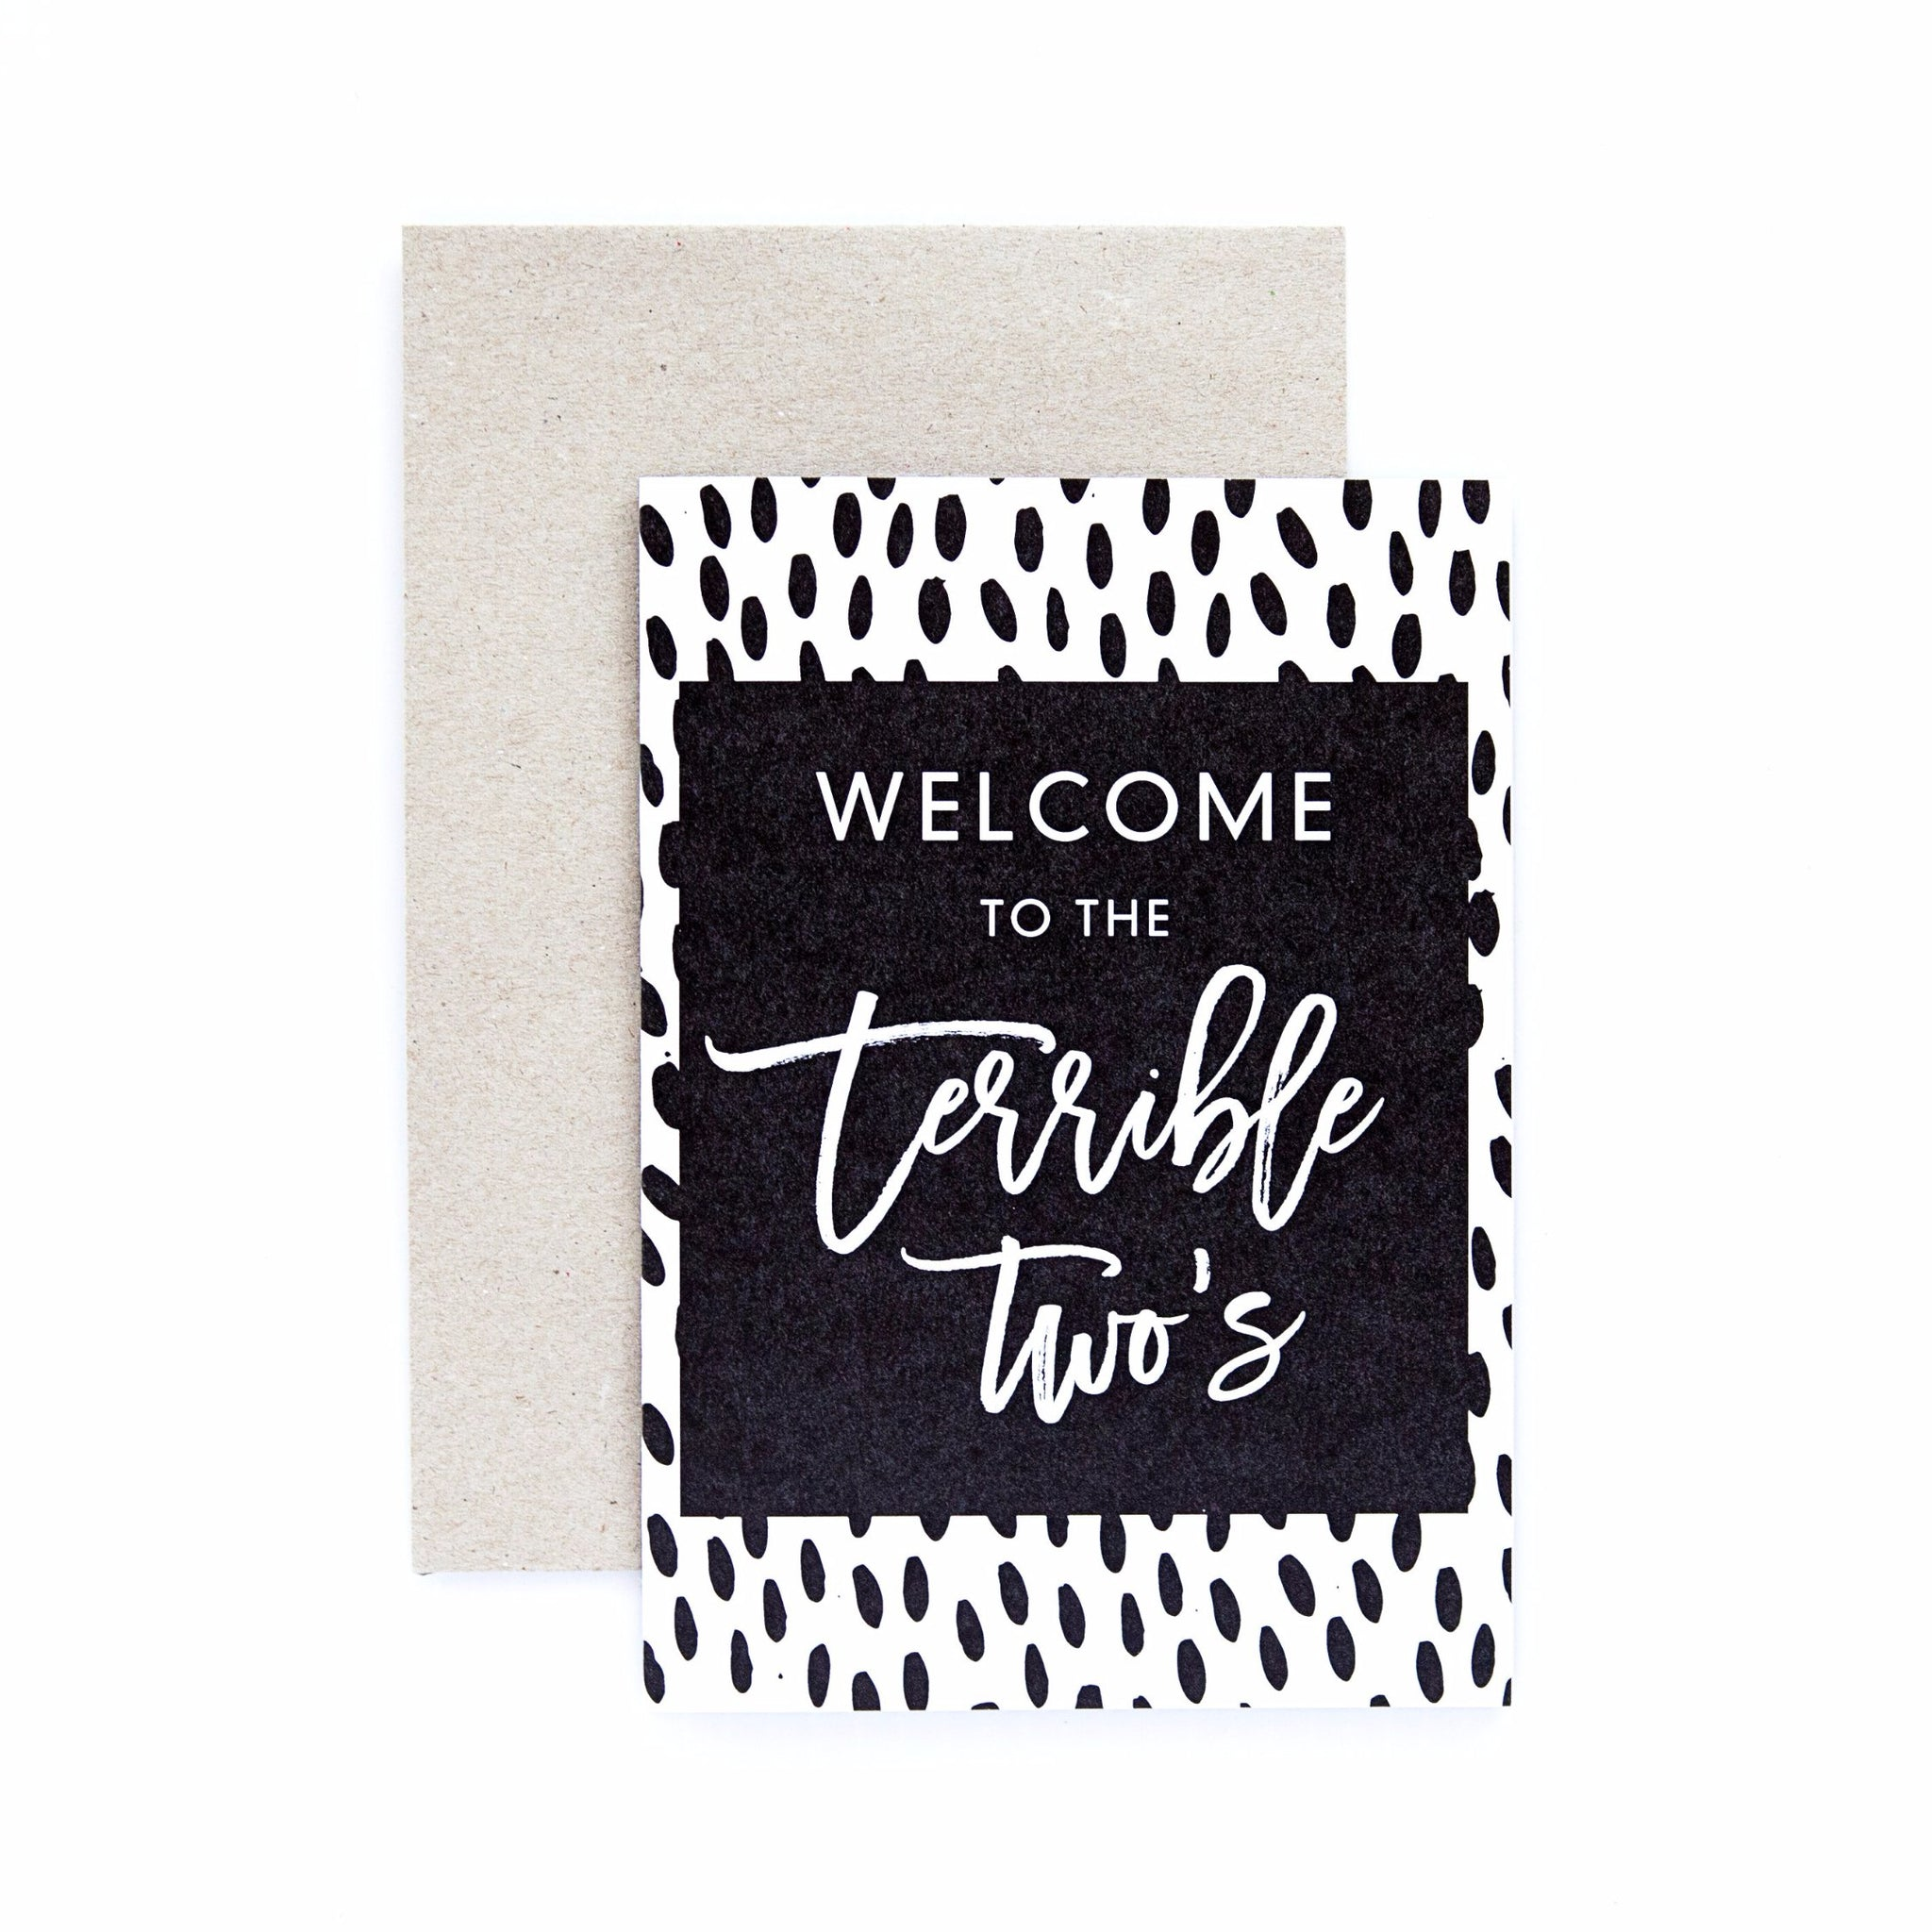 Seriously greeting cards kids birthday card a little bit of cheek seriously welcome to the terrible twos greeting card kristyandbryce Choice Image